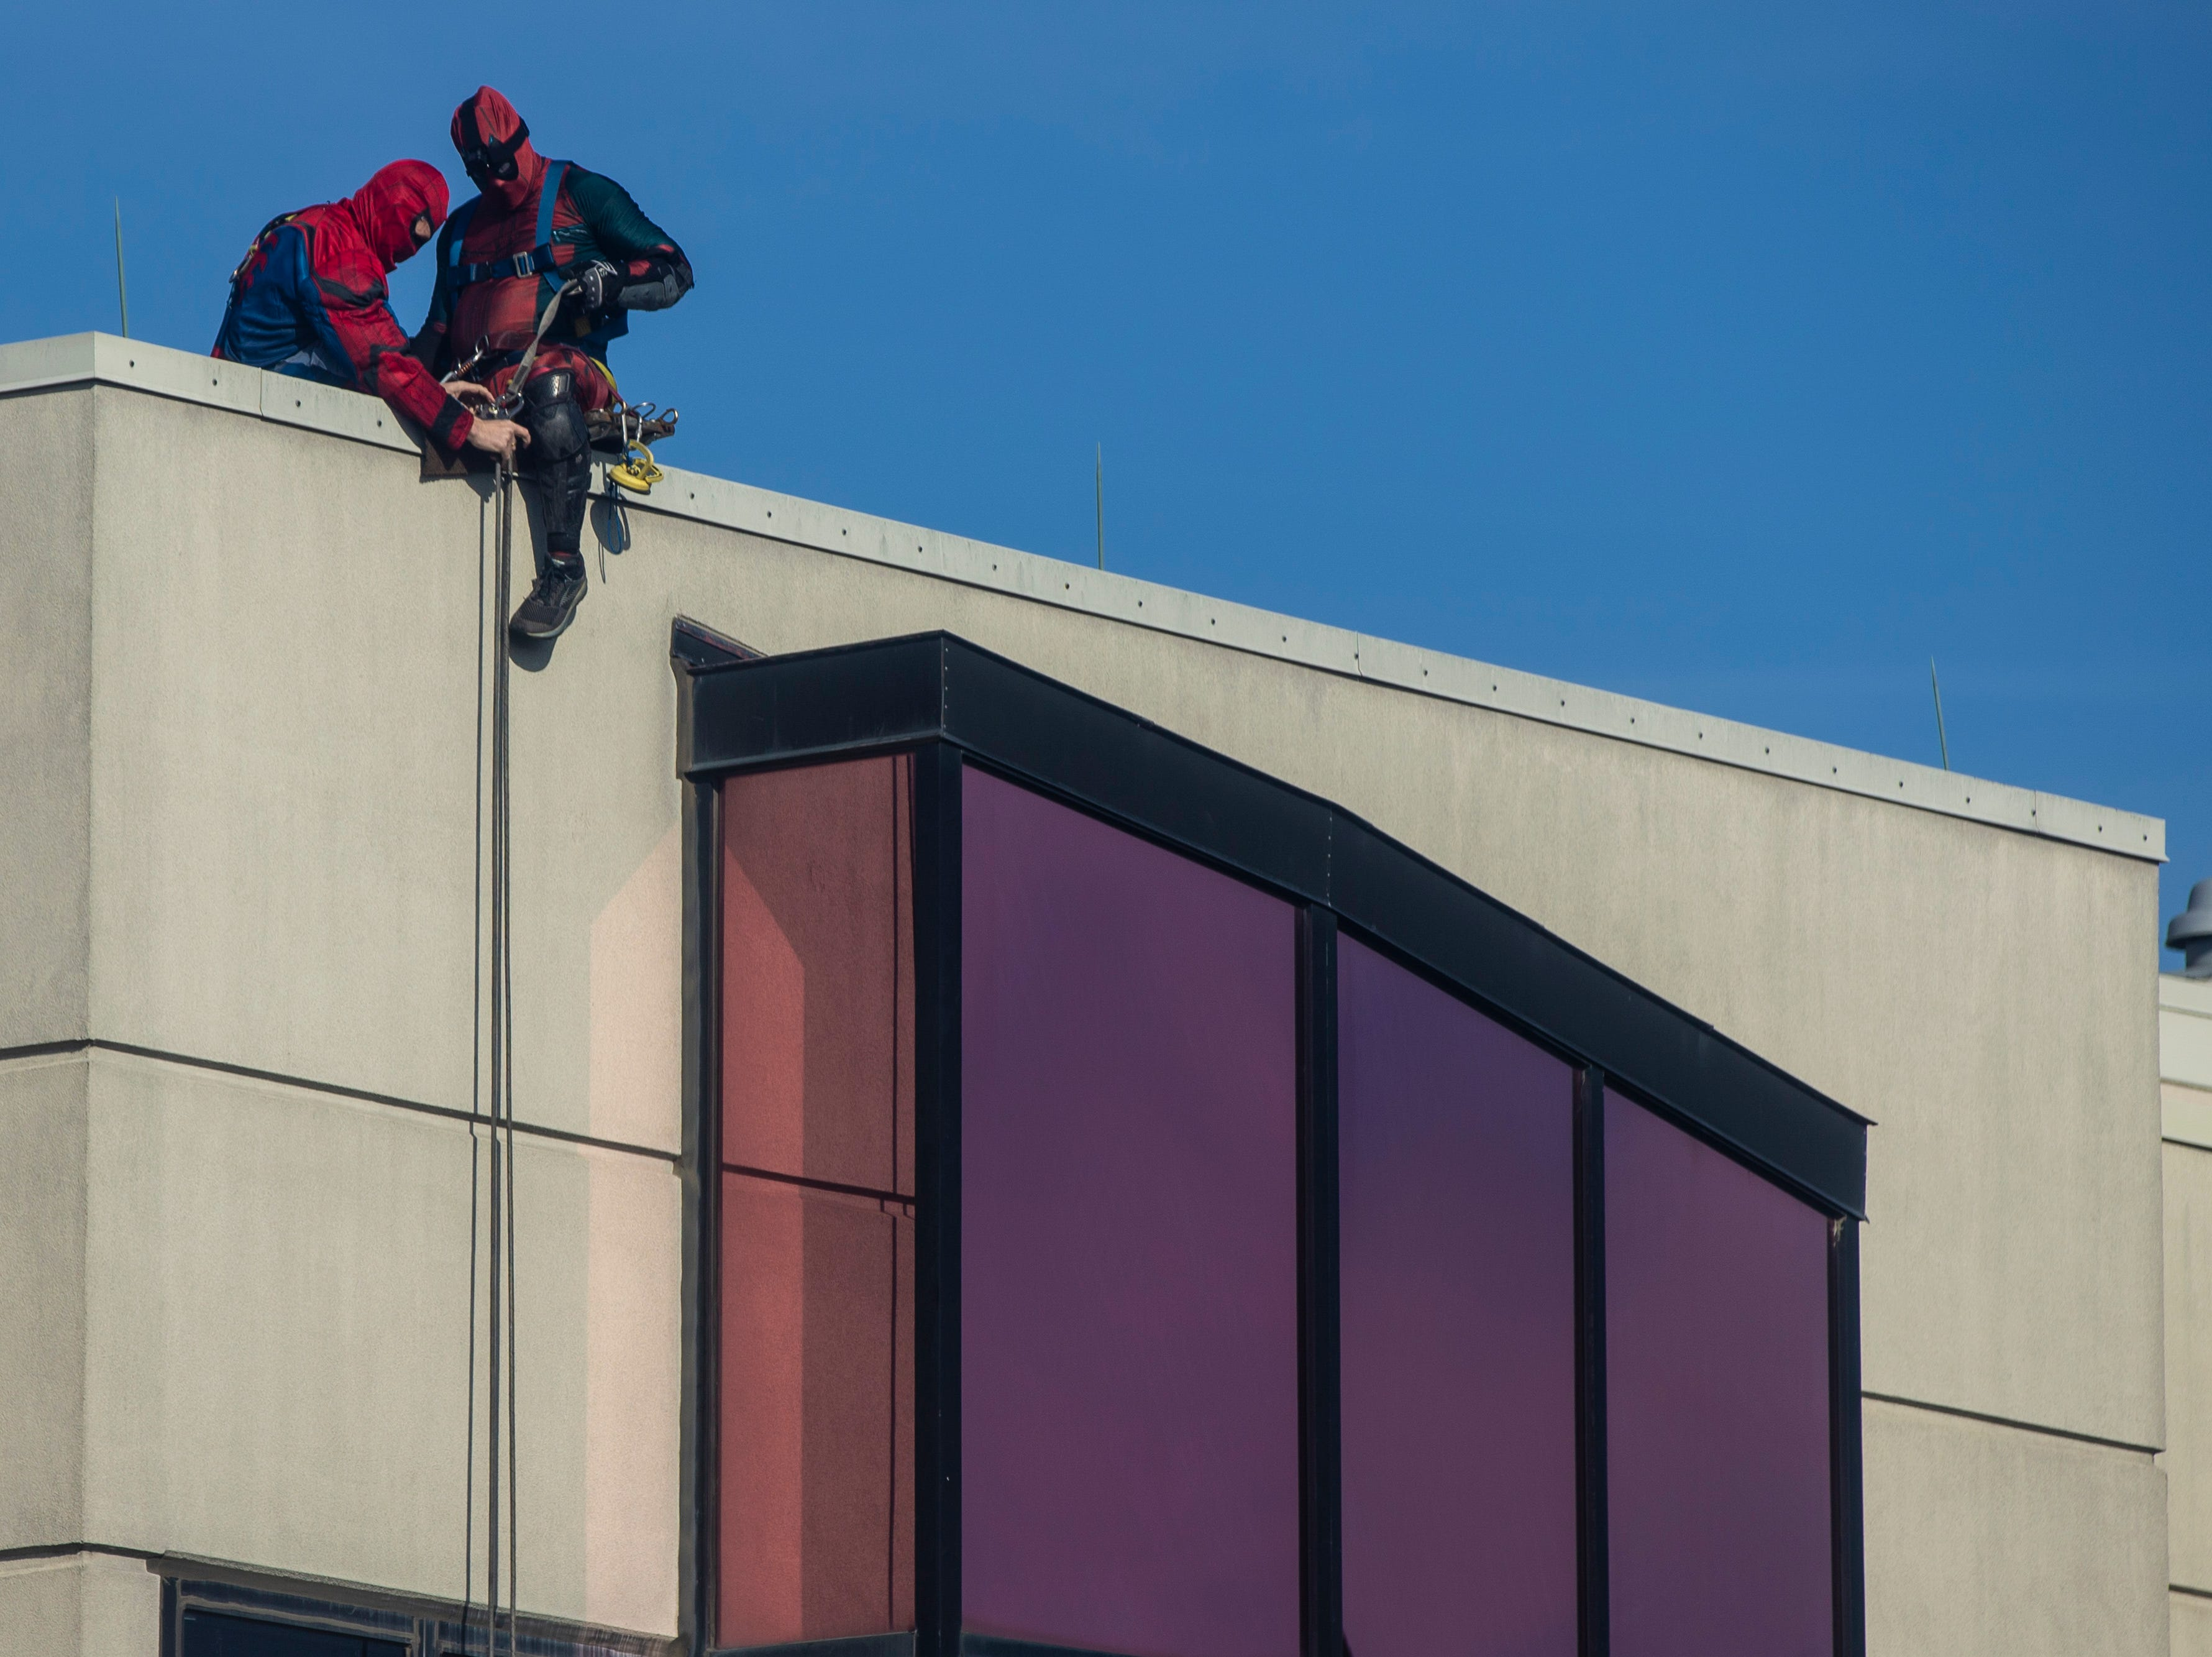 Duke Hart, left, and Johnny Haist with Pro Clean International prepare to descend as the team wore super hero costumes while cleaning the windows at Norton Children's Hospital on Thursday. Feb. 21, 2019